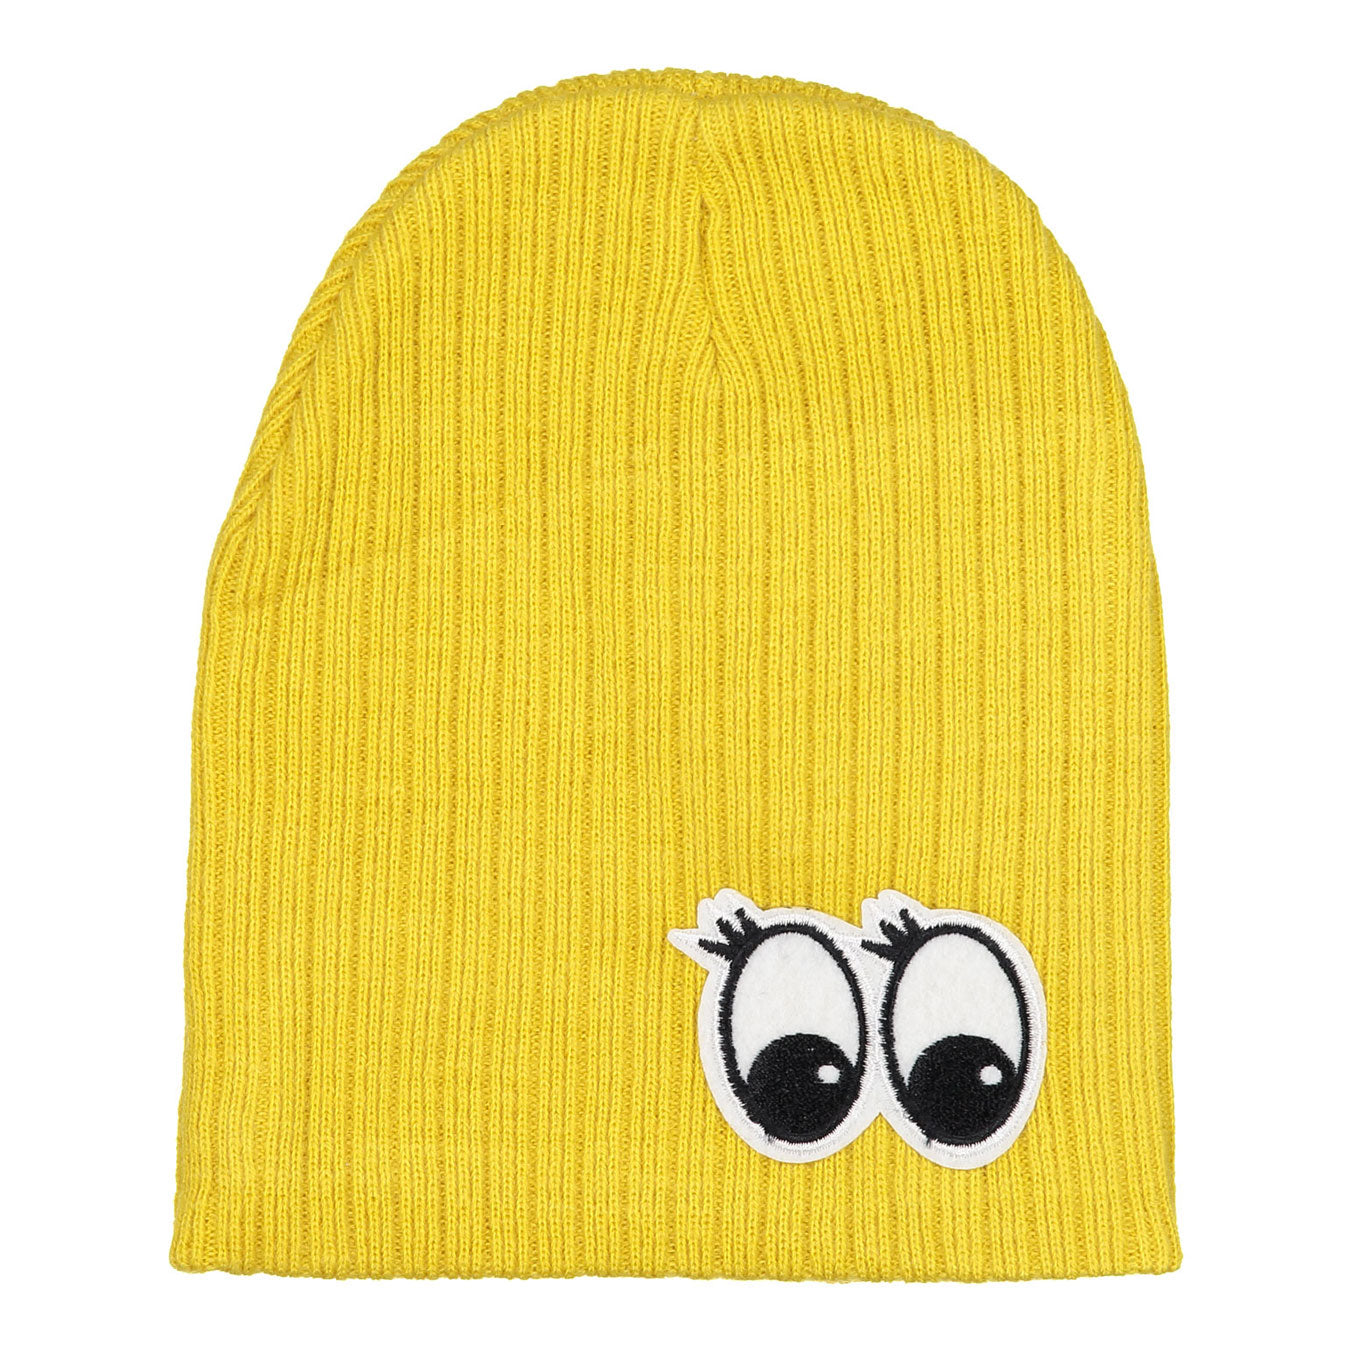 Firefly Mustard Ribbed Eyes Hat - Ladida